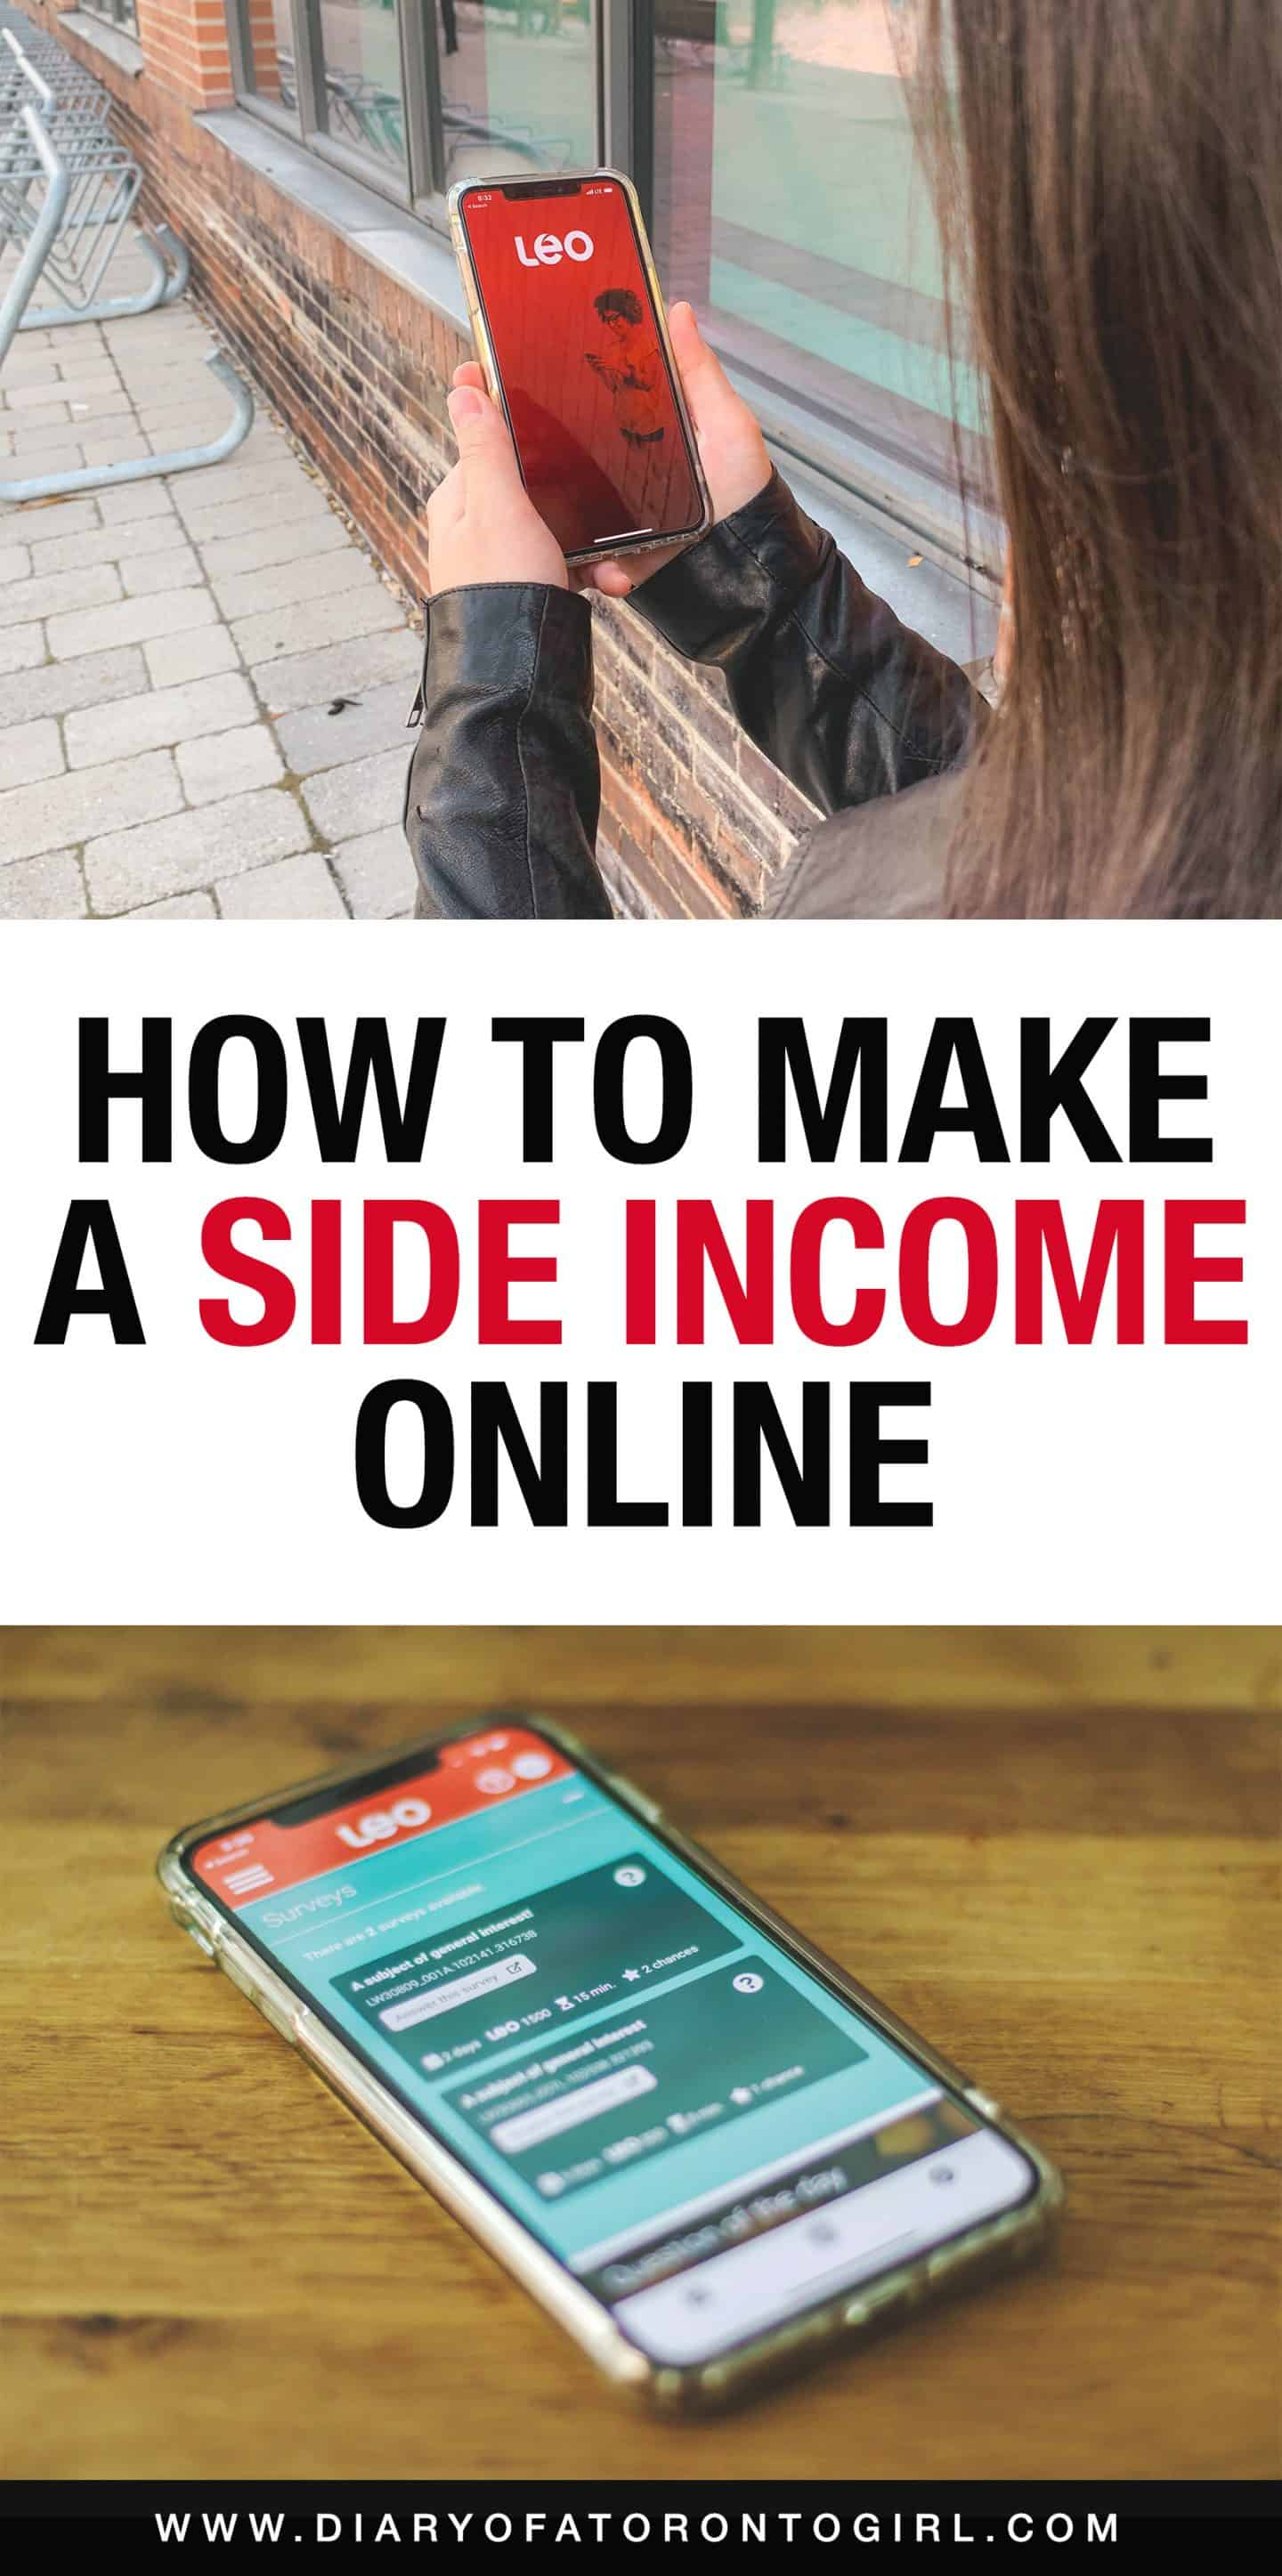 Looking for ways to make extra income through the internet? Here are ways to make a side income online in Canada, to help you get a little extra cash in your pocket for your savings and future!